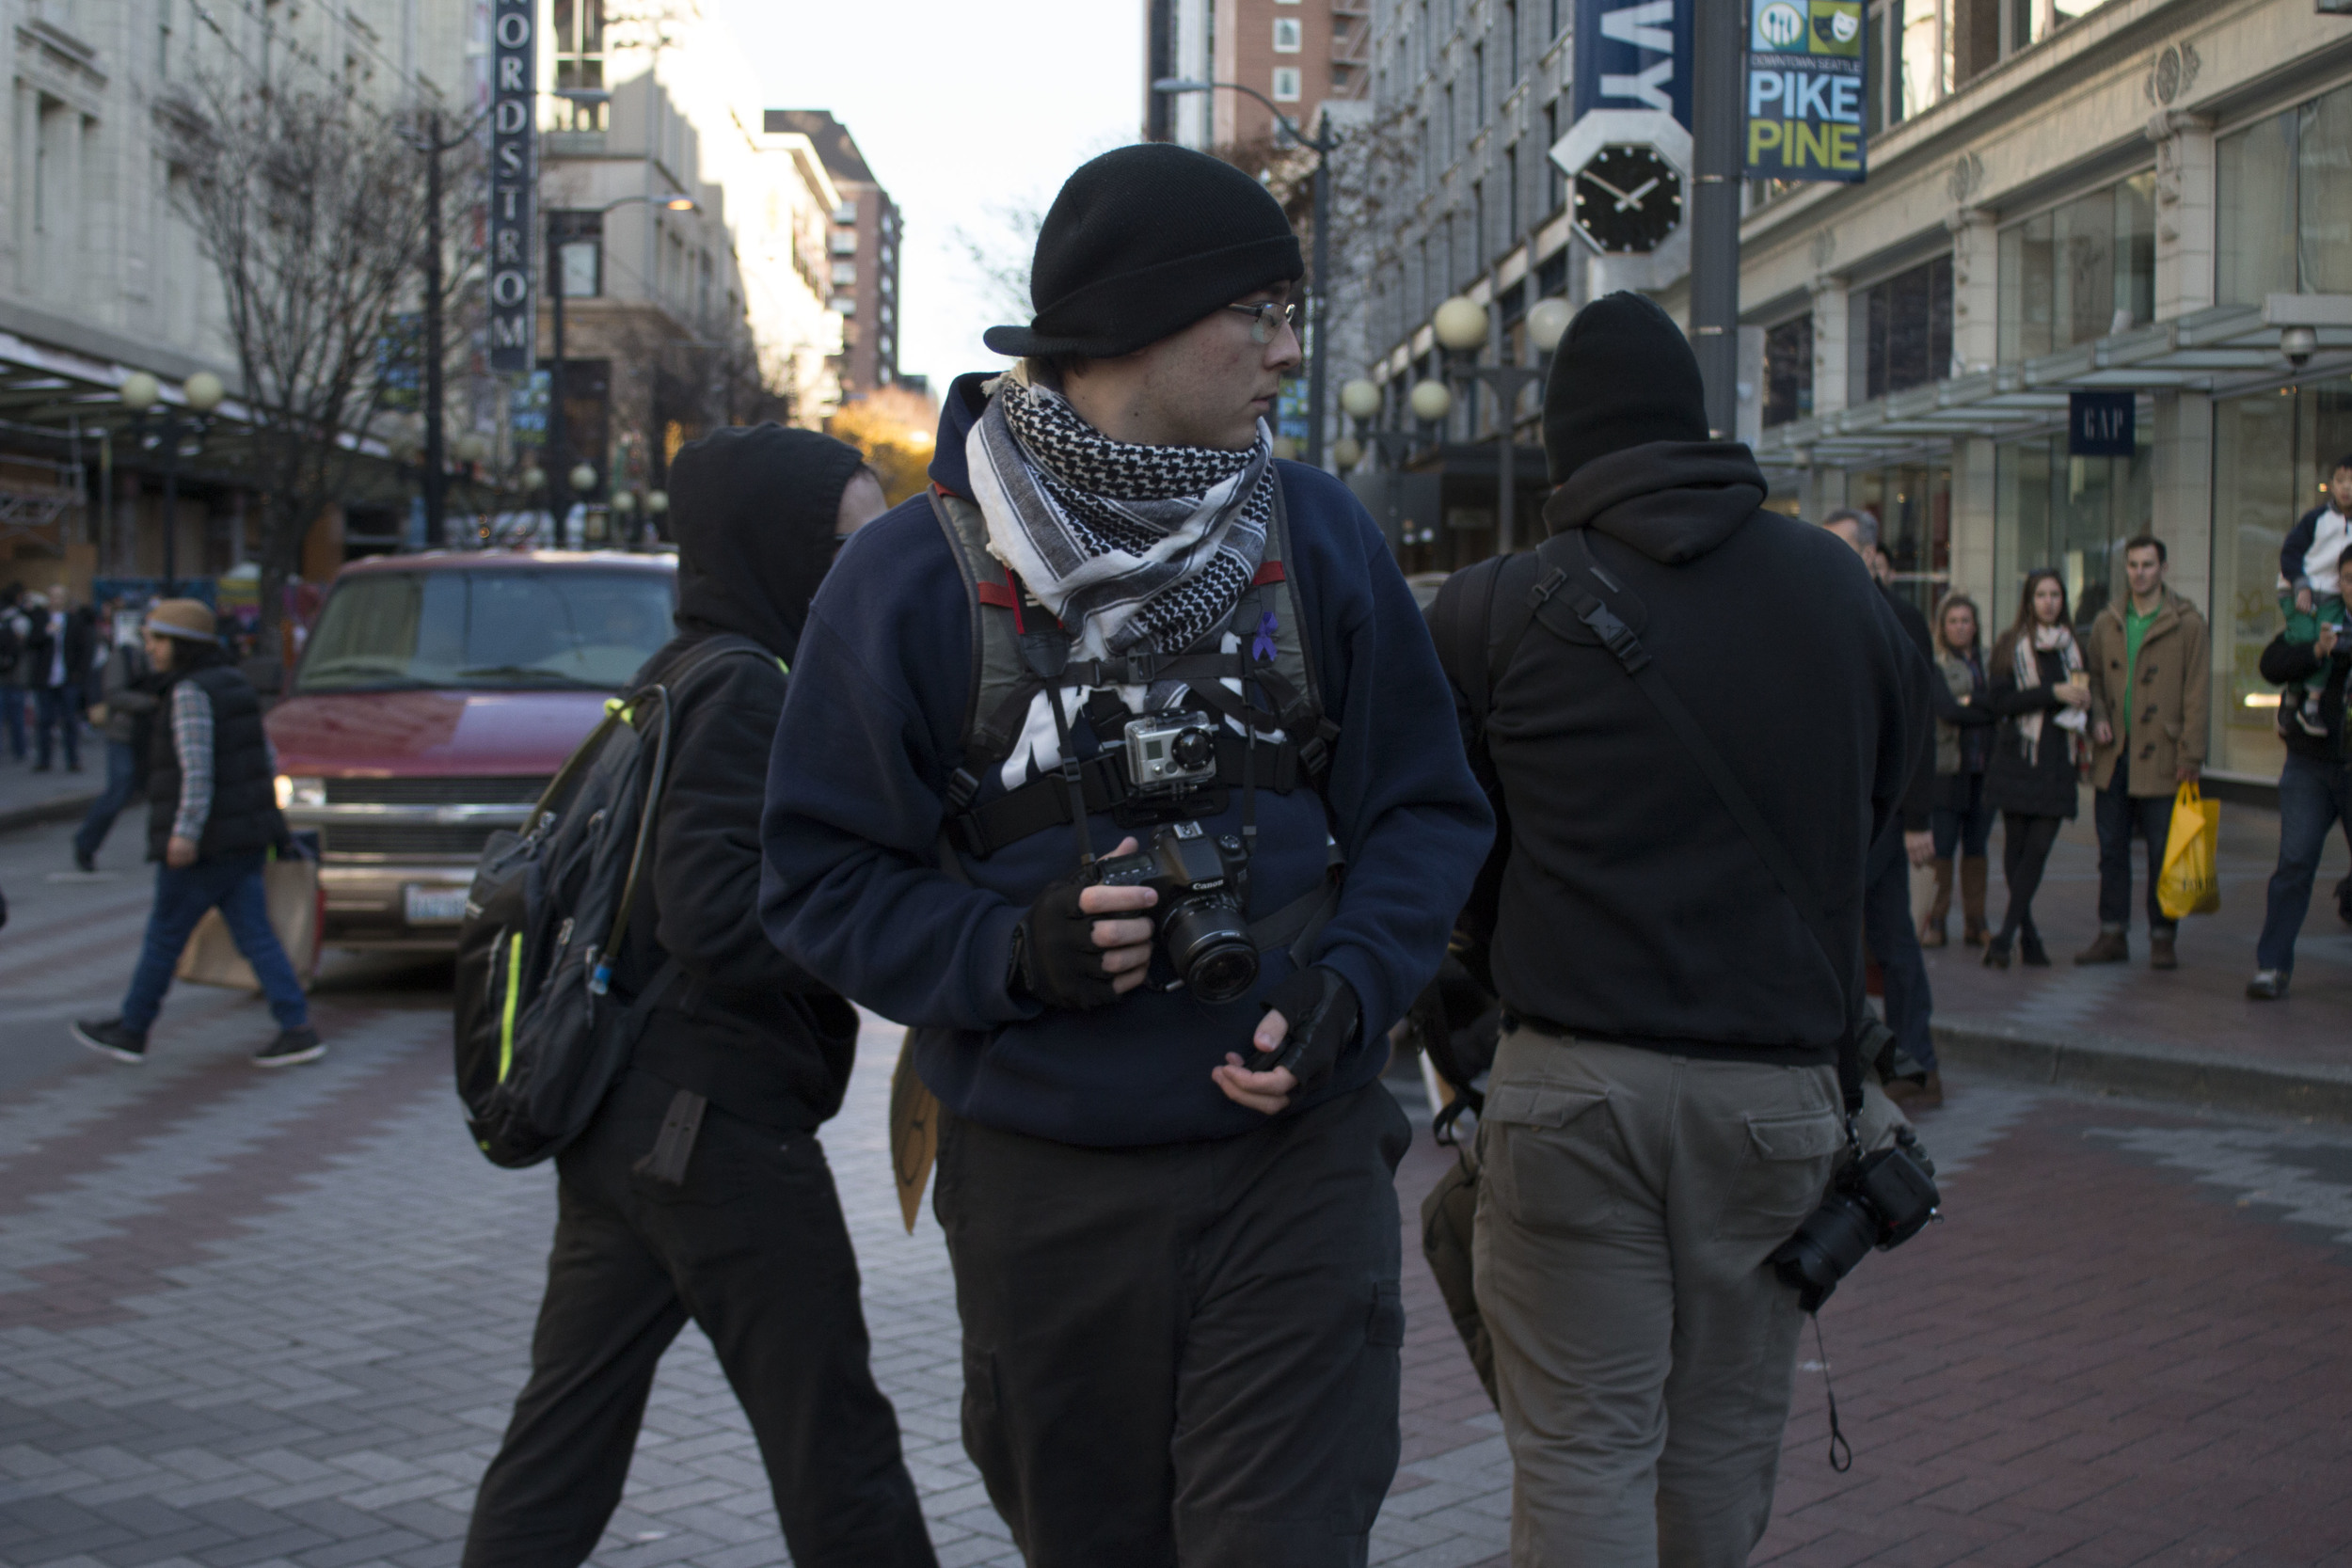 Nelson glances around while photographing the Black Friday Black Lives Matter protest as the crowd moves through the streets of downtown Seattle. Nelson said he always tries to be aware and keep an eye on his surroundings.